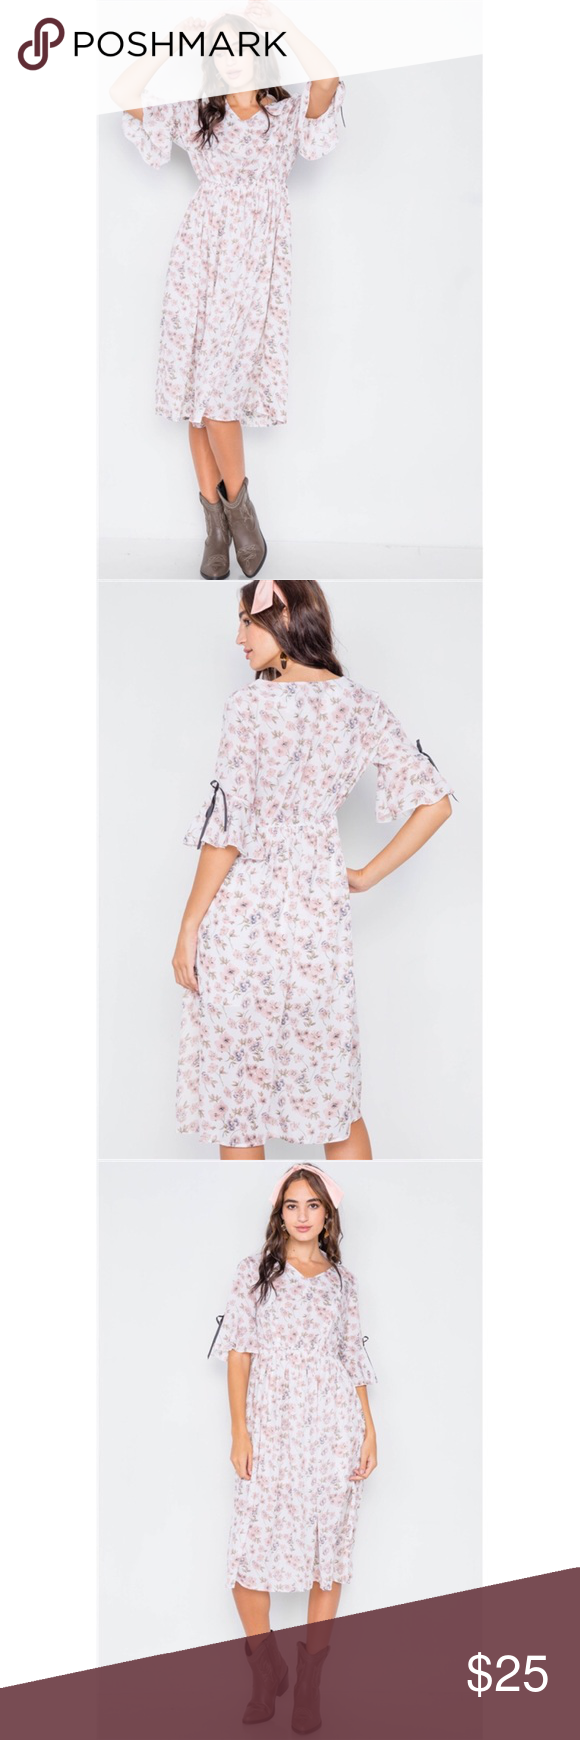 Pink White Floral Flounce Stretchy Midi Dress Pink Midi Dress Dresses Midi Dress [ 1740 x 580 Pixel ]